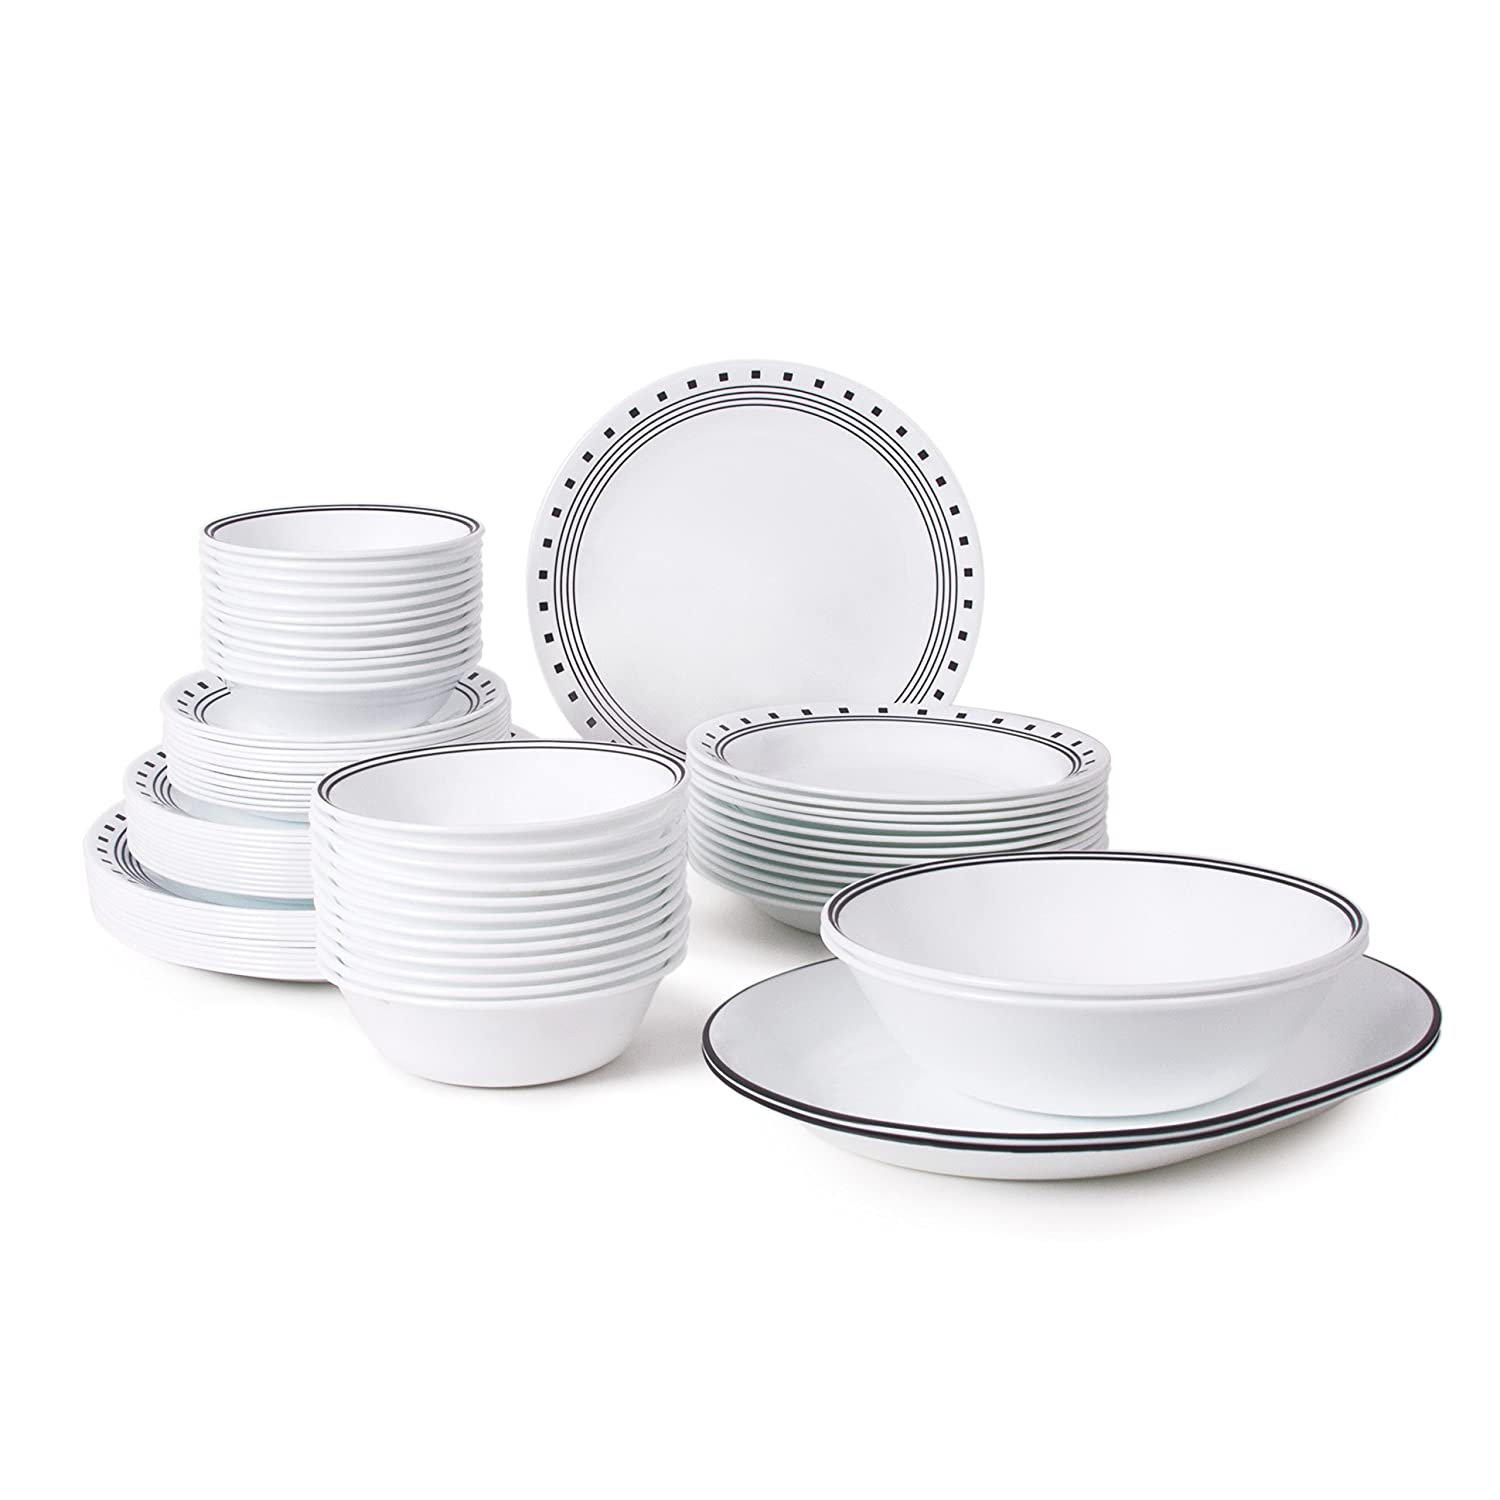 Amazon.com | Corelle Livingware 76-Piece Dinnerware Set Service for 12 City Block Dinnerware Sets  sc 1 st  Amazon.com & Amazon.com | Corelle Livingware 76-Piece Dinnerware Set Service for ...